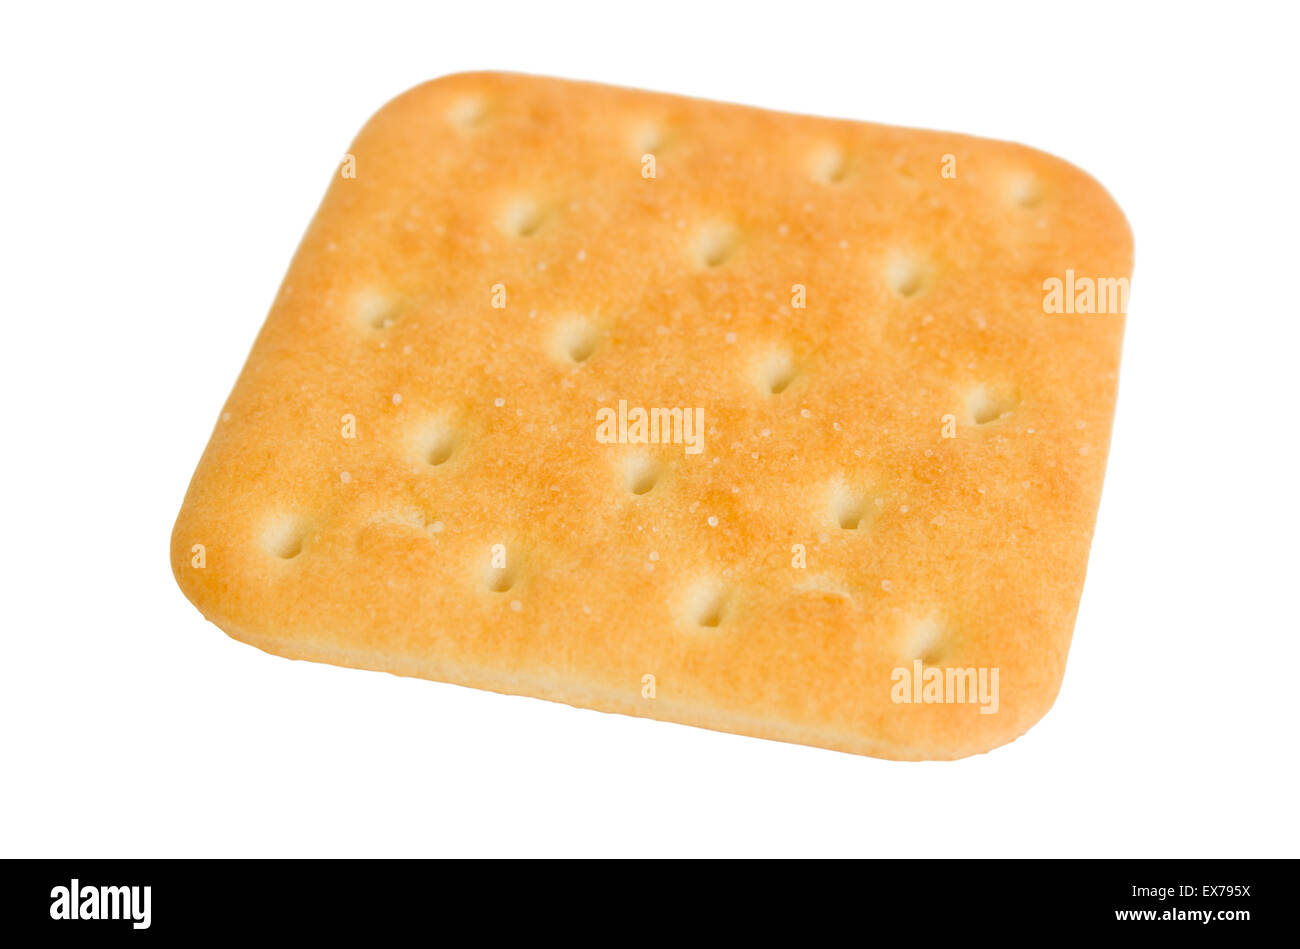 Square cracker biscuits with salt isolated on a white background. Stock Photo